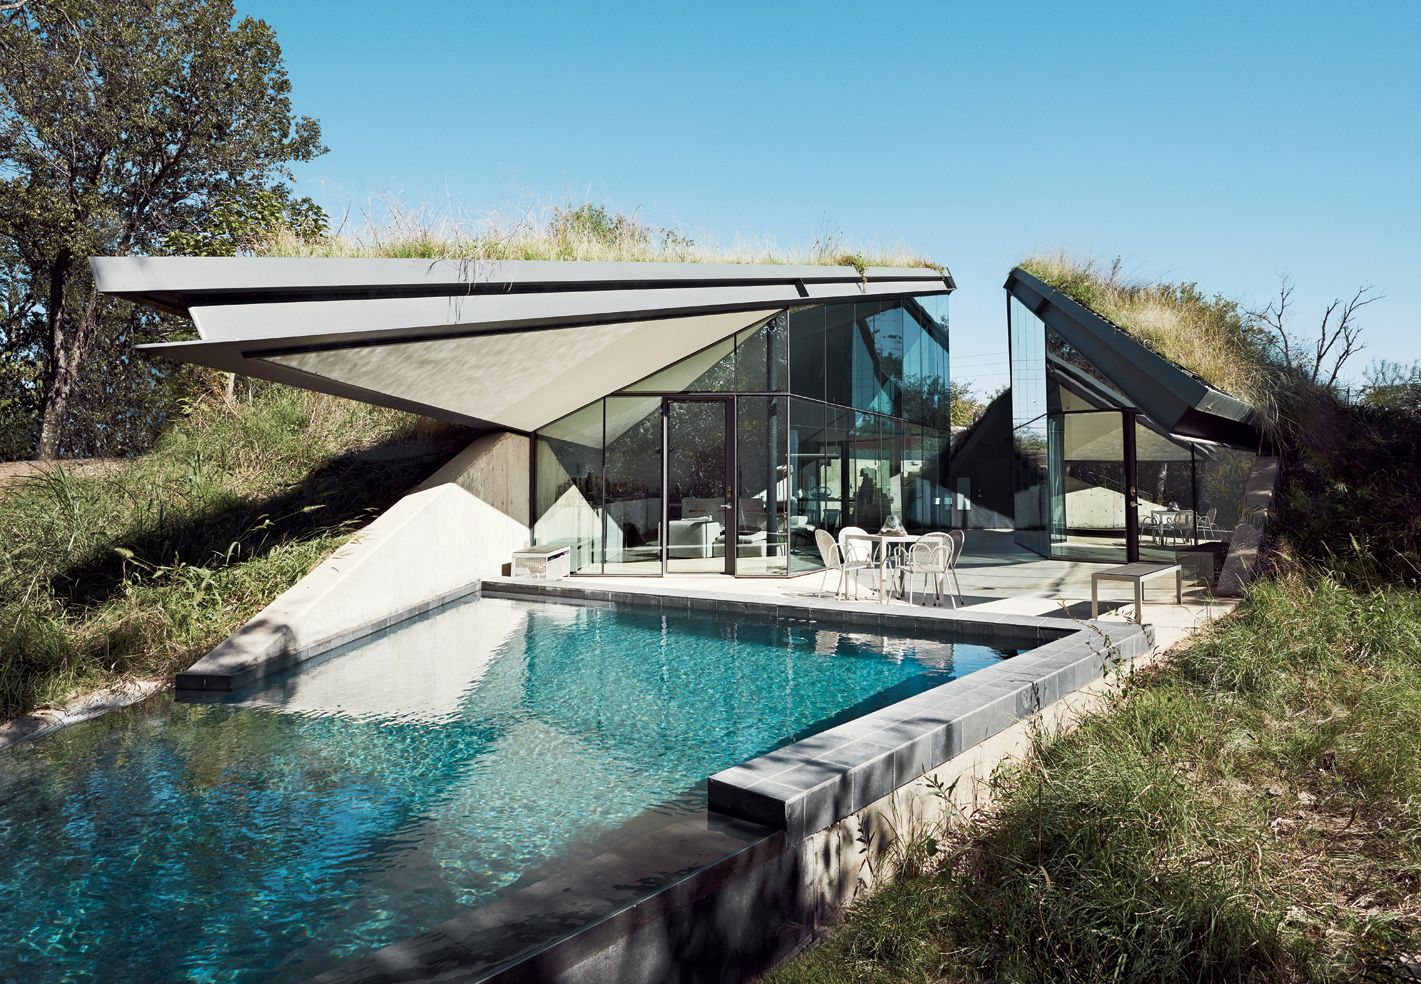 Discussion on this topic: Find Eco-Friendly Luxury At The Edgeland House, find-eco-friendly-luxury-at-the-edgeland-house/